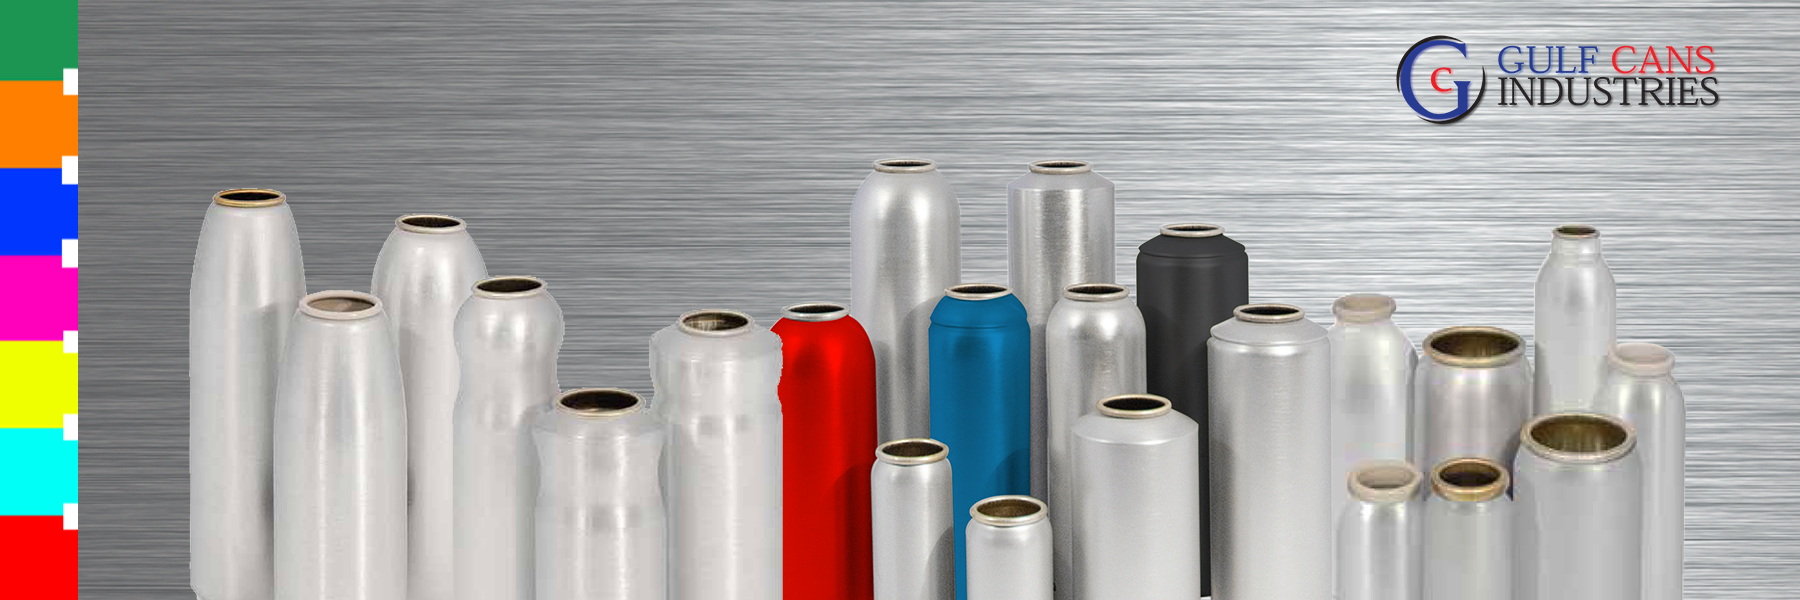 Gulf Cans Industries | Best Cans Factory in UAE